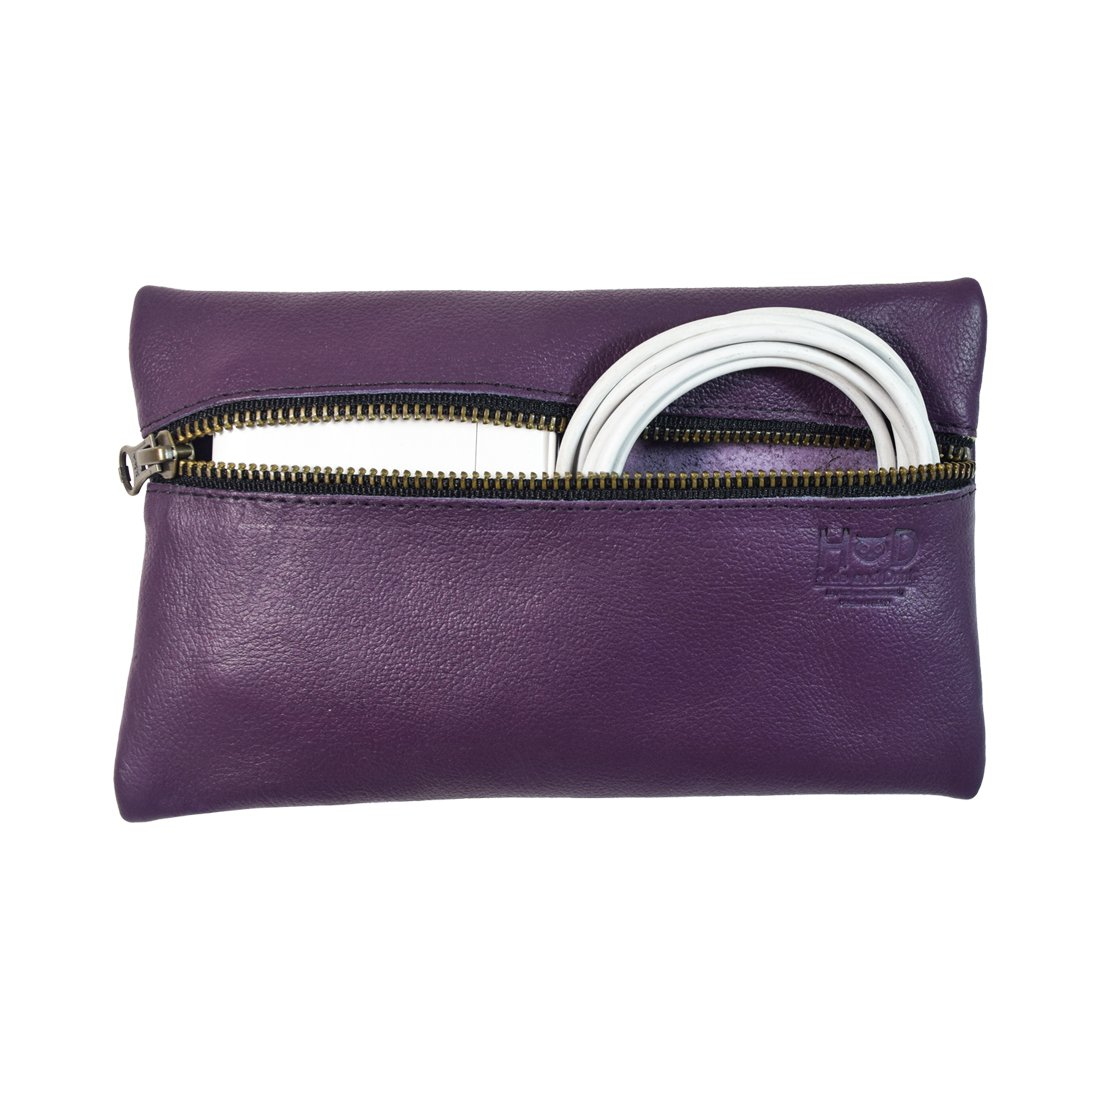 Leather All Purpose Utility & Charger Case for MacBook, iPad & Laptop Handmade by Hide & Drink :: Purple